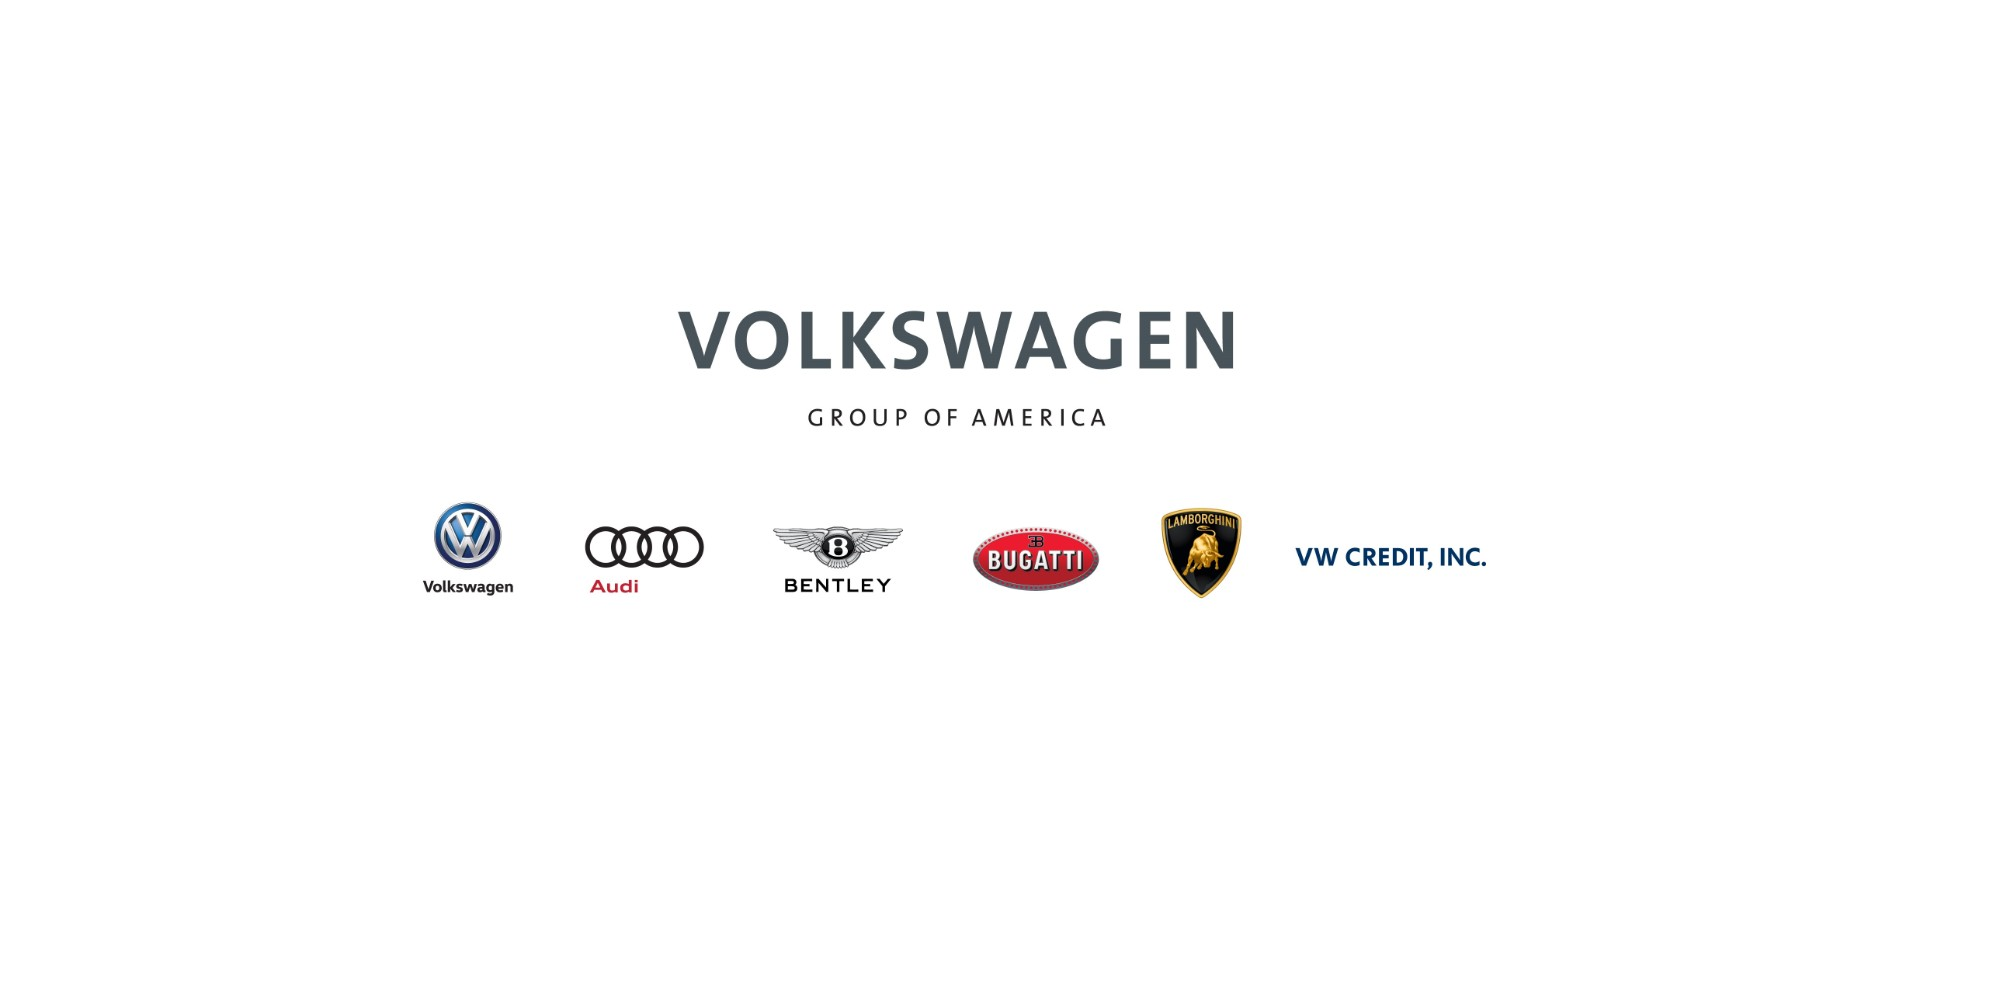 Volkswagen Group of America Foundation Donates $125,000 To The Florida Disaster Fund To Aid Hurricane Michael Relief